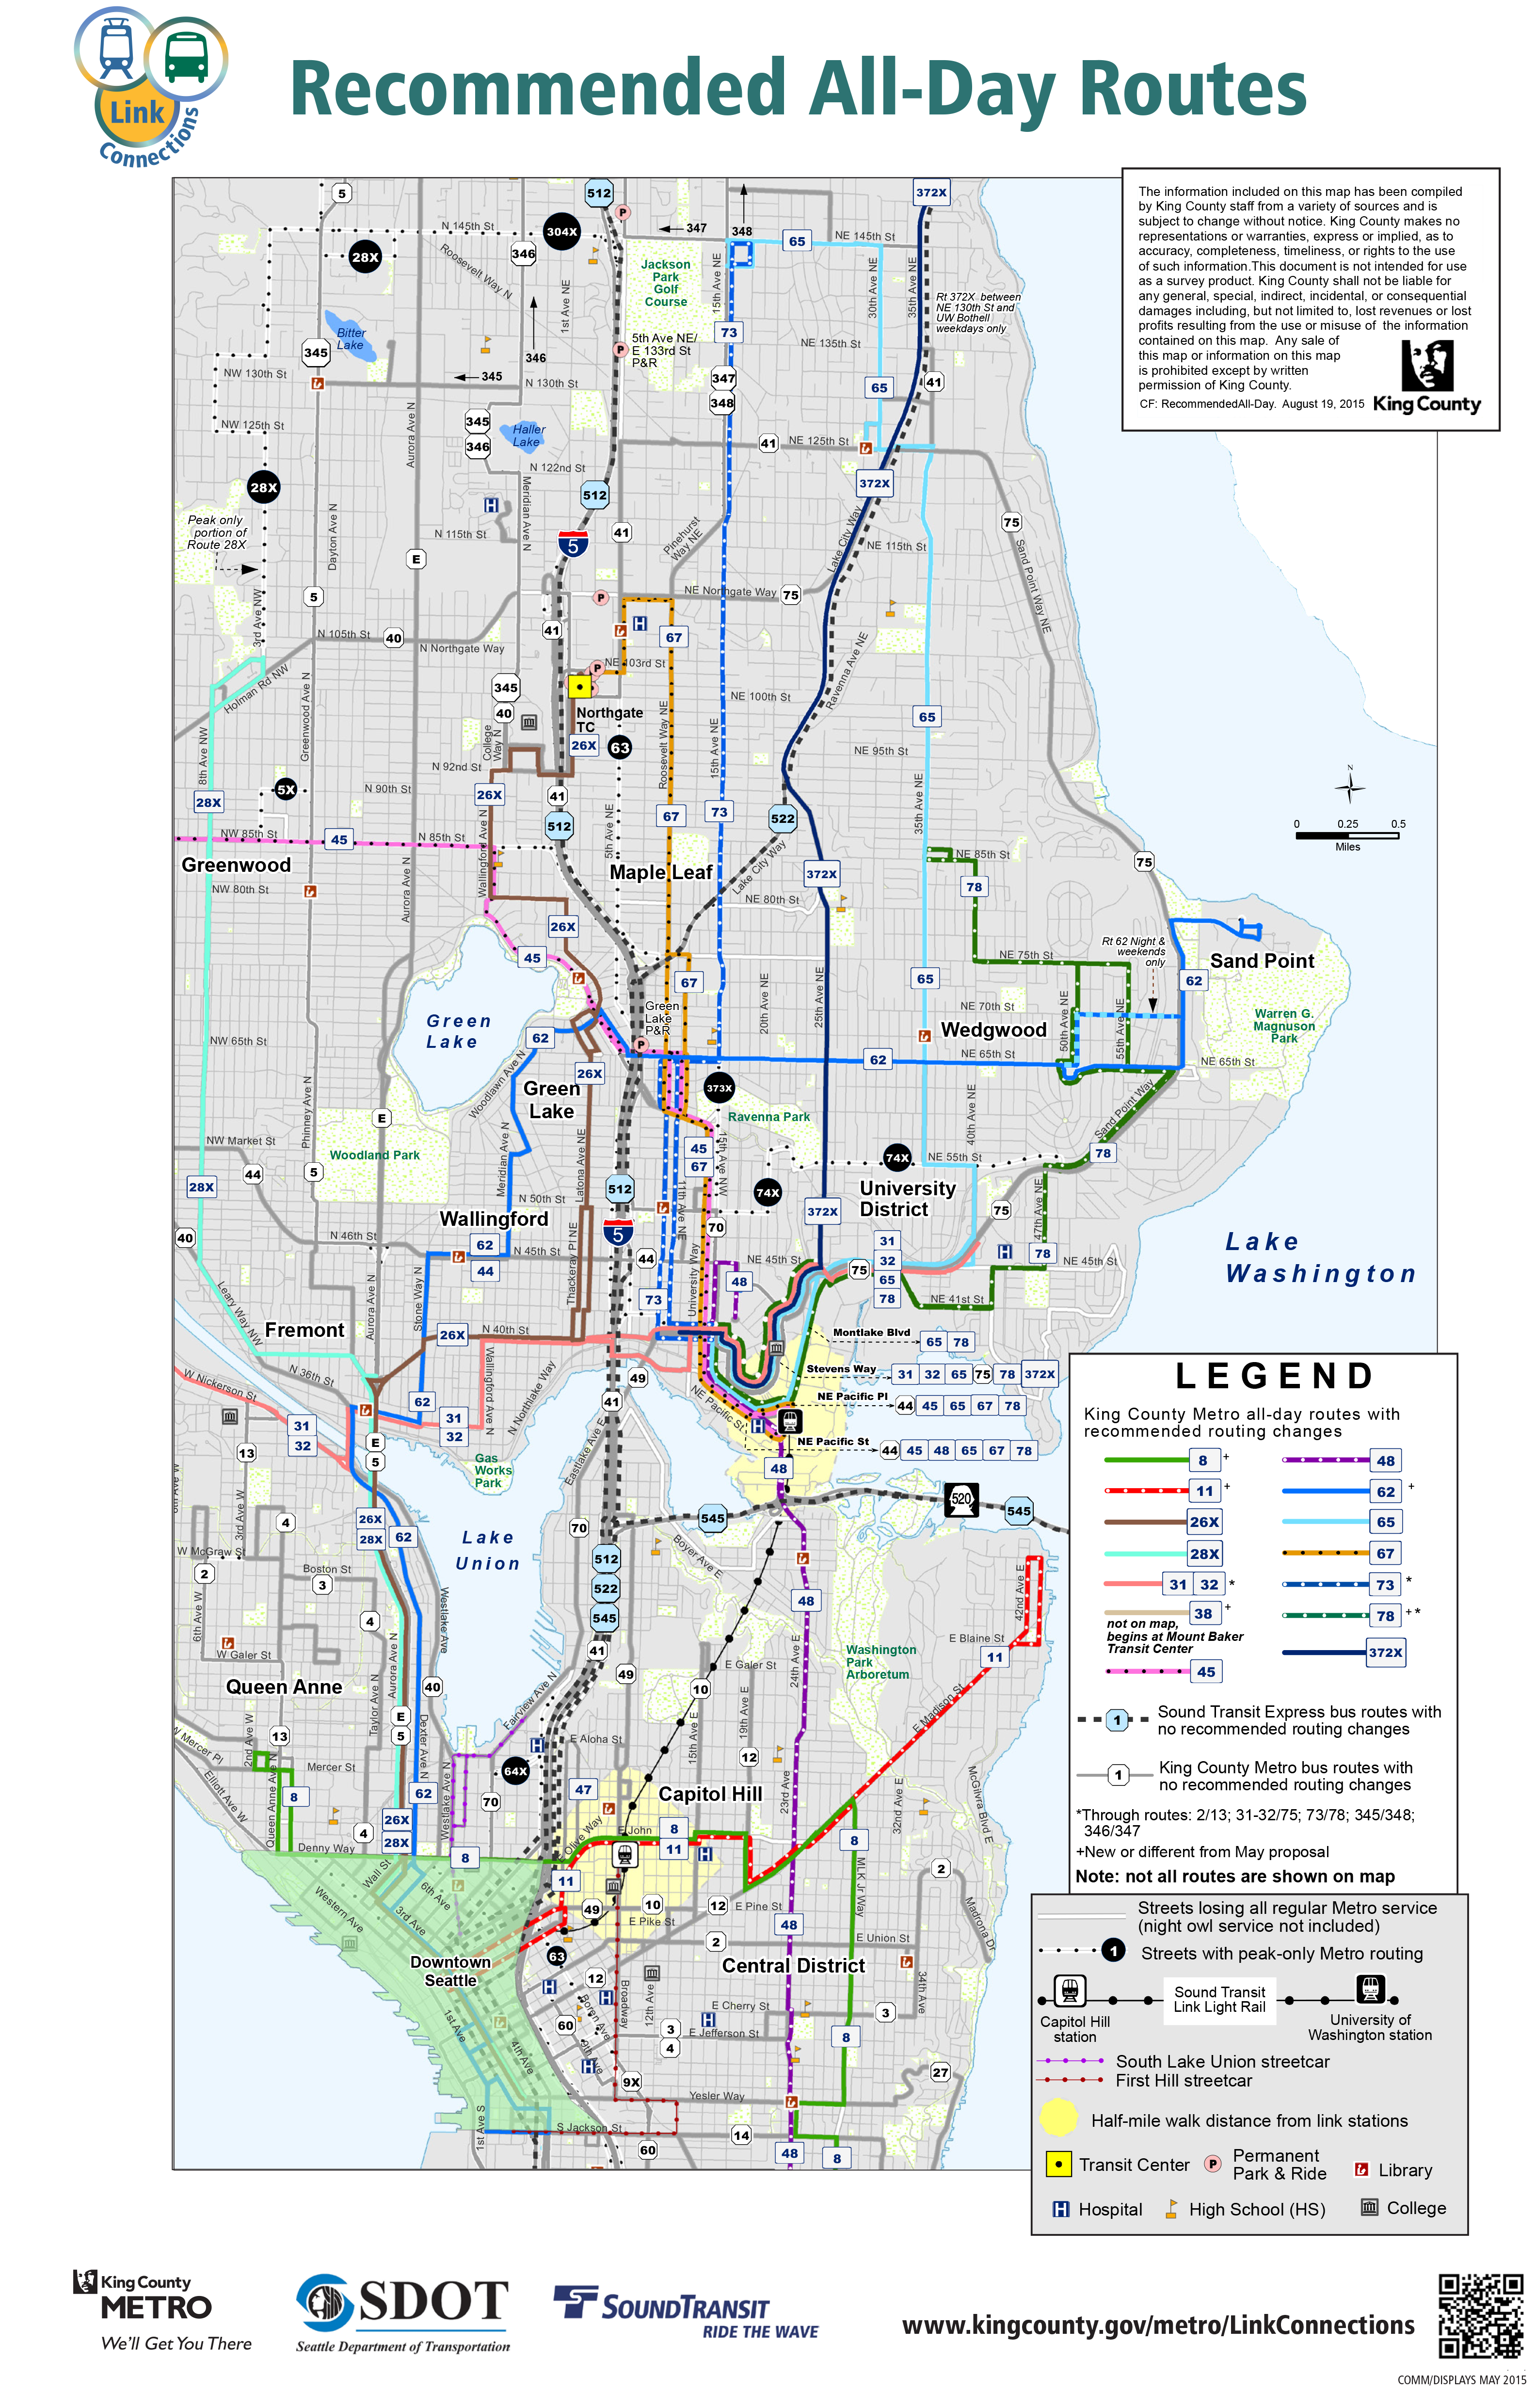 King County Council Receives Recommended U-Link Bus